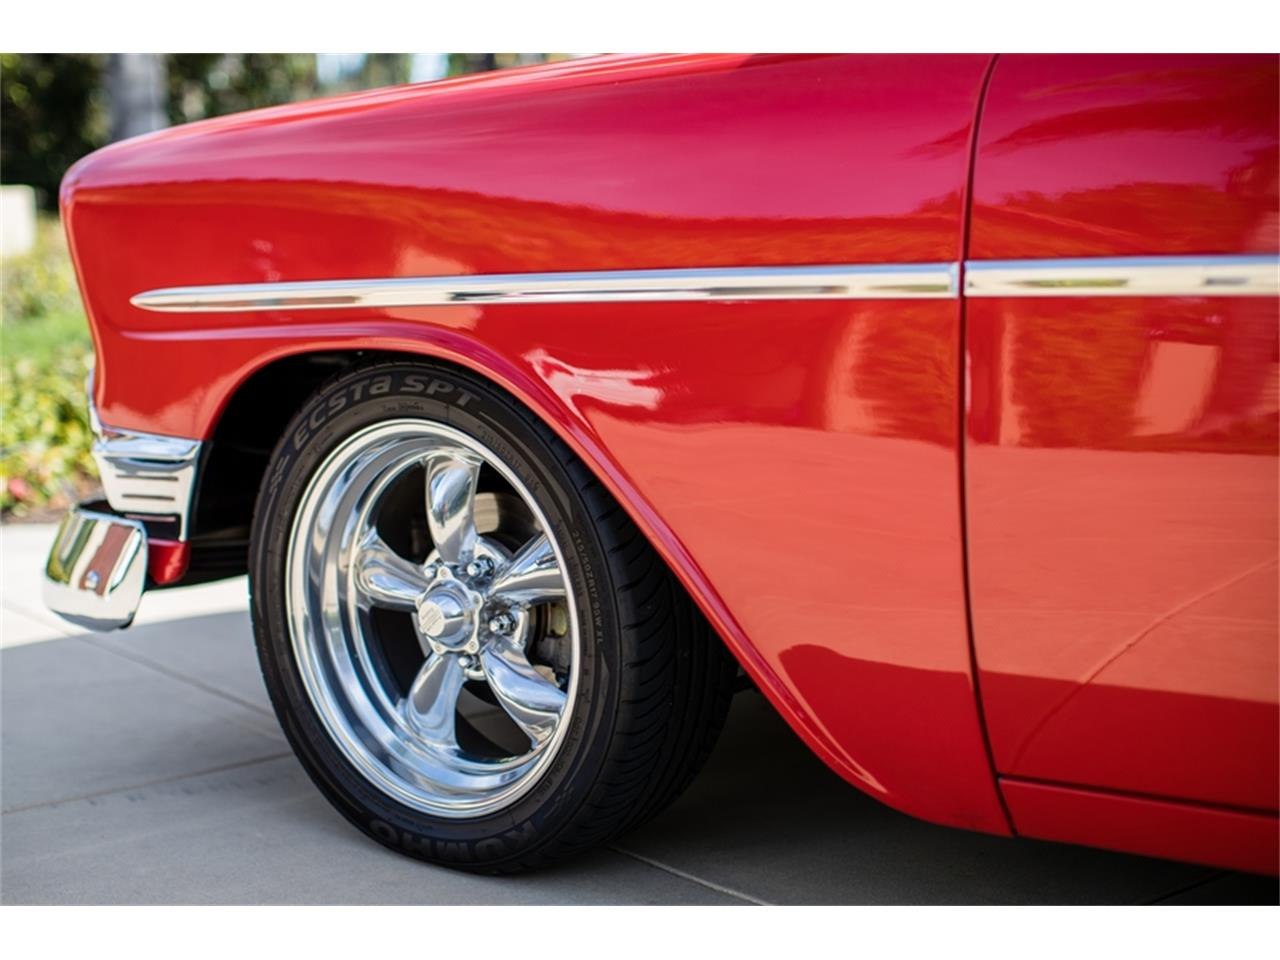 Large Picture of Classic '56 Chevrolet Bel Air - $47,000.00 - N6LL